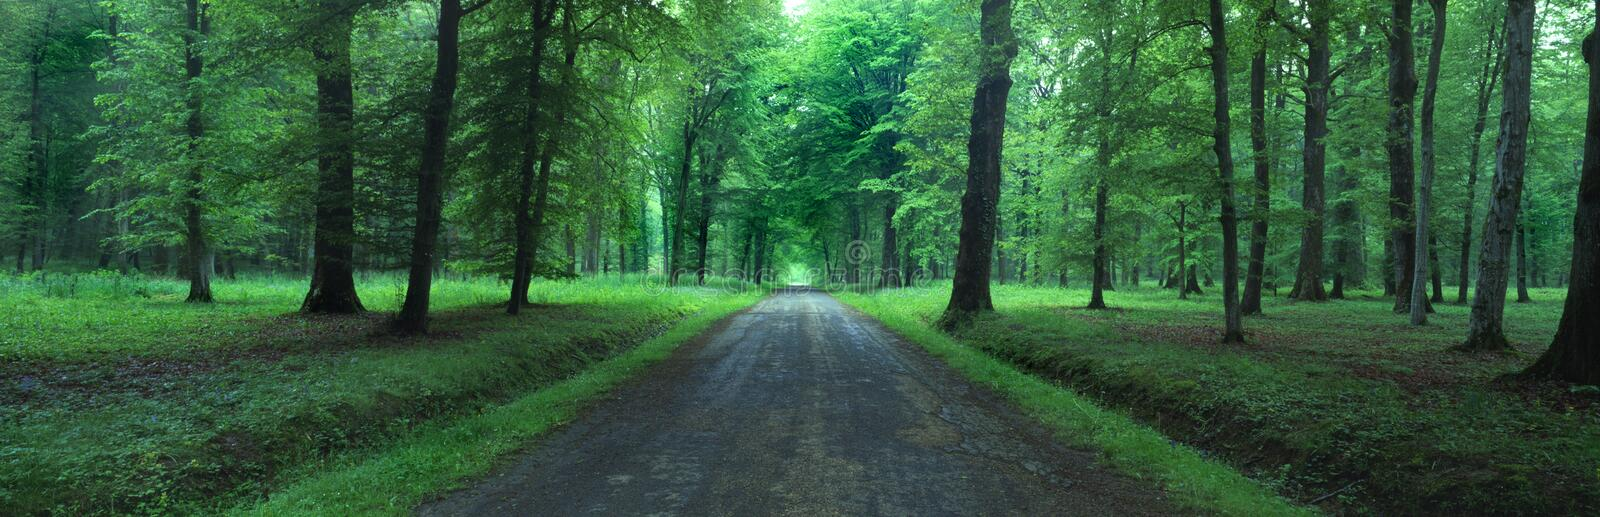 Belleau Wood, France royalty free stock images